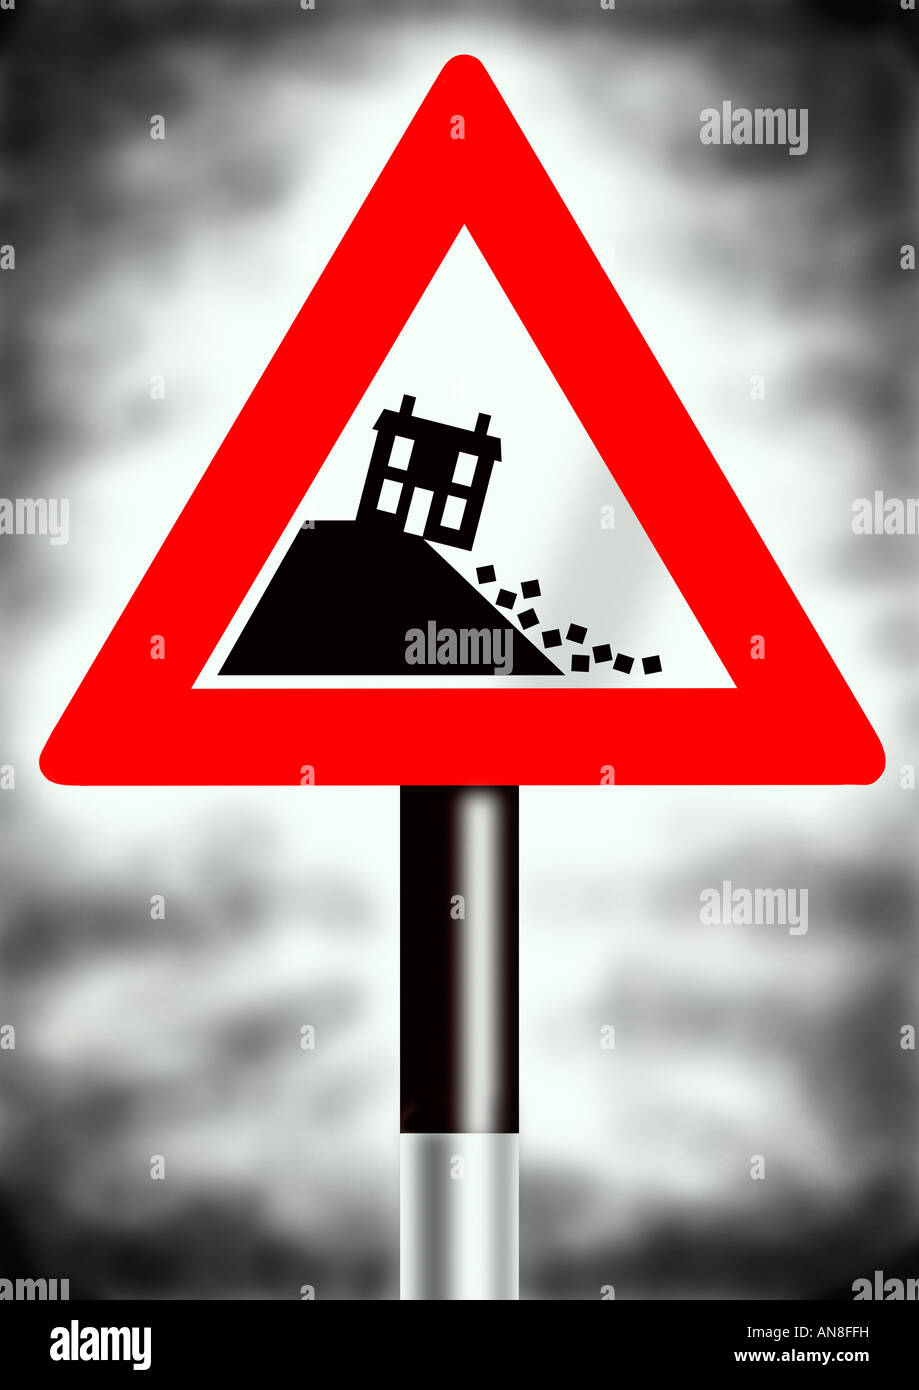 Warning Sign Of House Prices Crash Stock Photo 15446884 Alamy